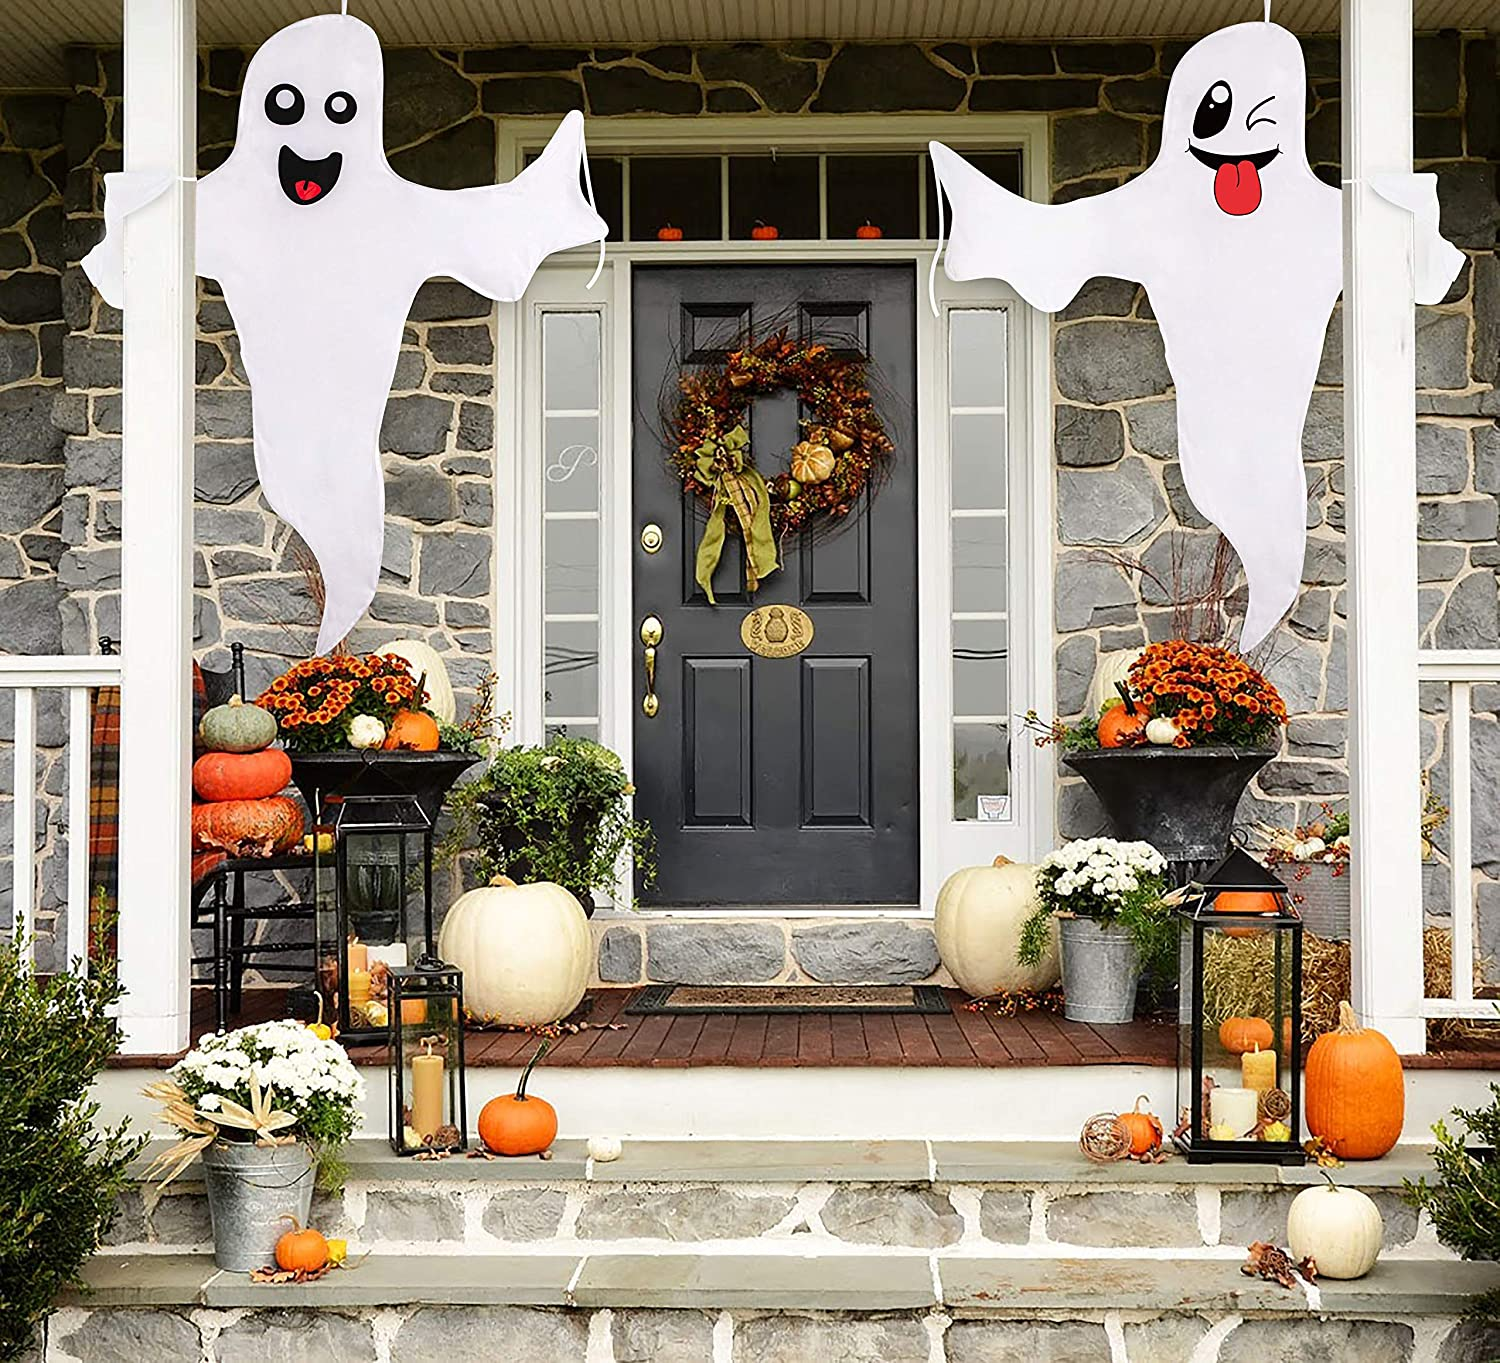 Large Hanging Outdoor Halloween Decorations.Halloween Ghost Hanging Decoration Outdoor Decor Hallowmas Tree Hugger Friendly Spooky Party Supplies 2 Pieces Amazon In Garden Outdoors